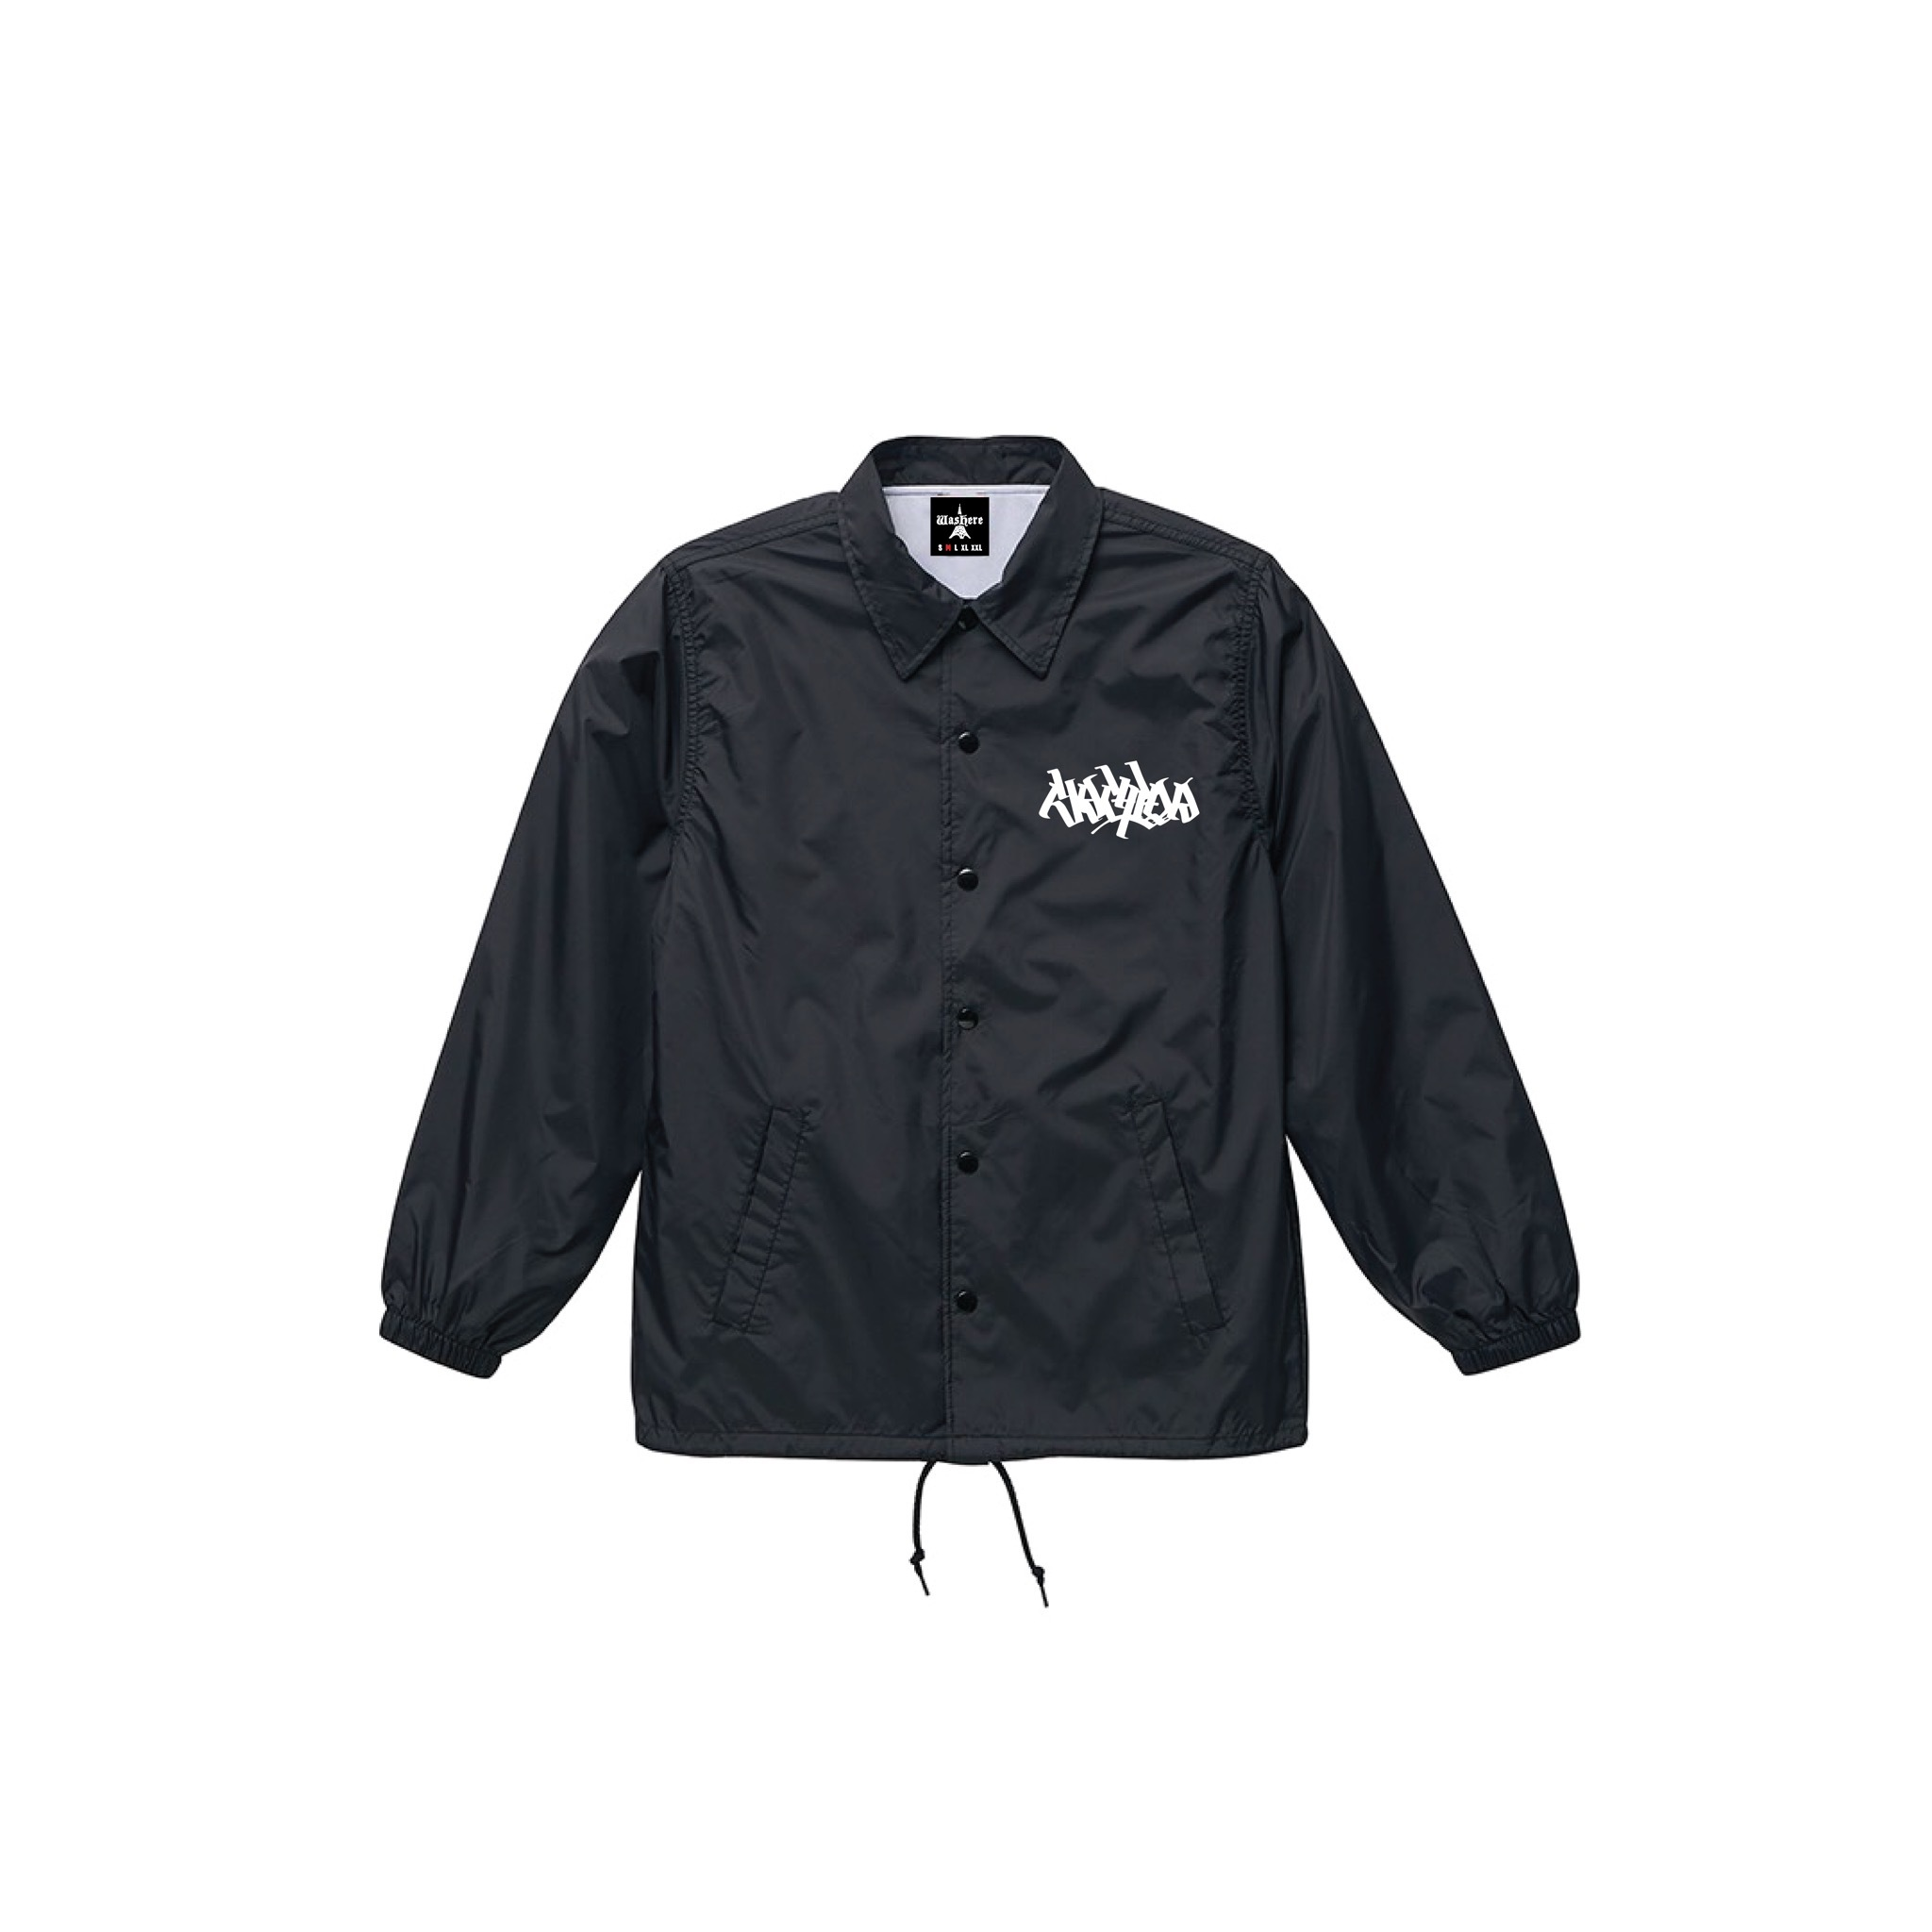 "WasHere x RepMCD  ""EXPLICIT CITY COACH JKT"""